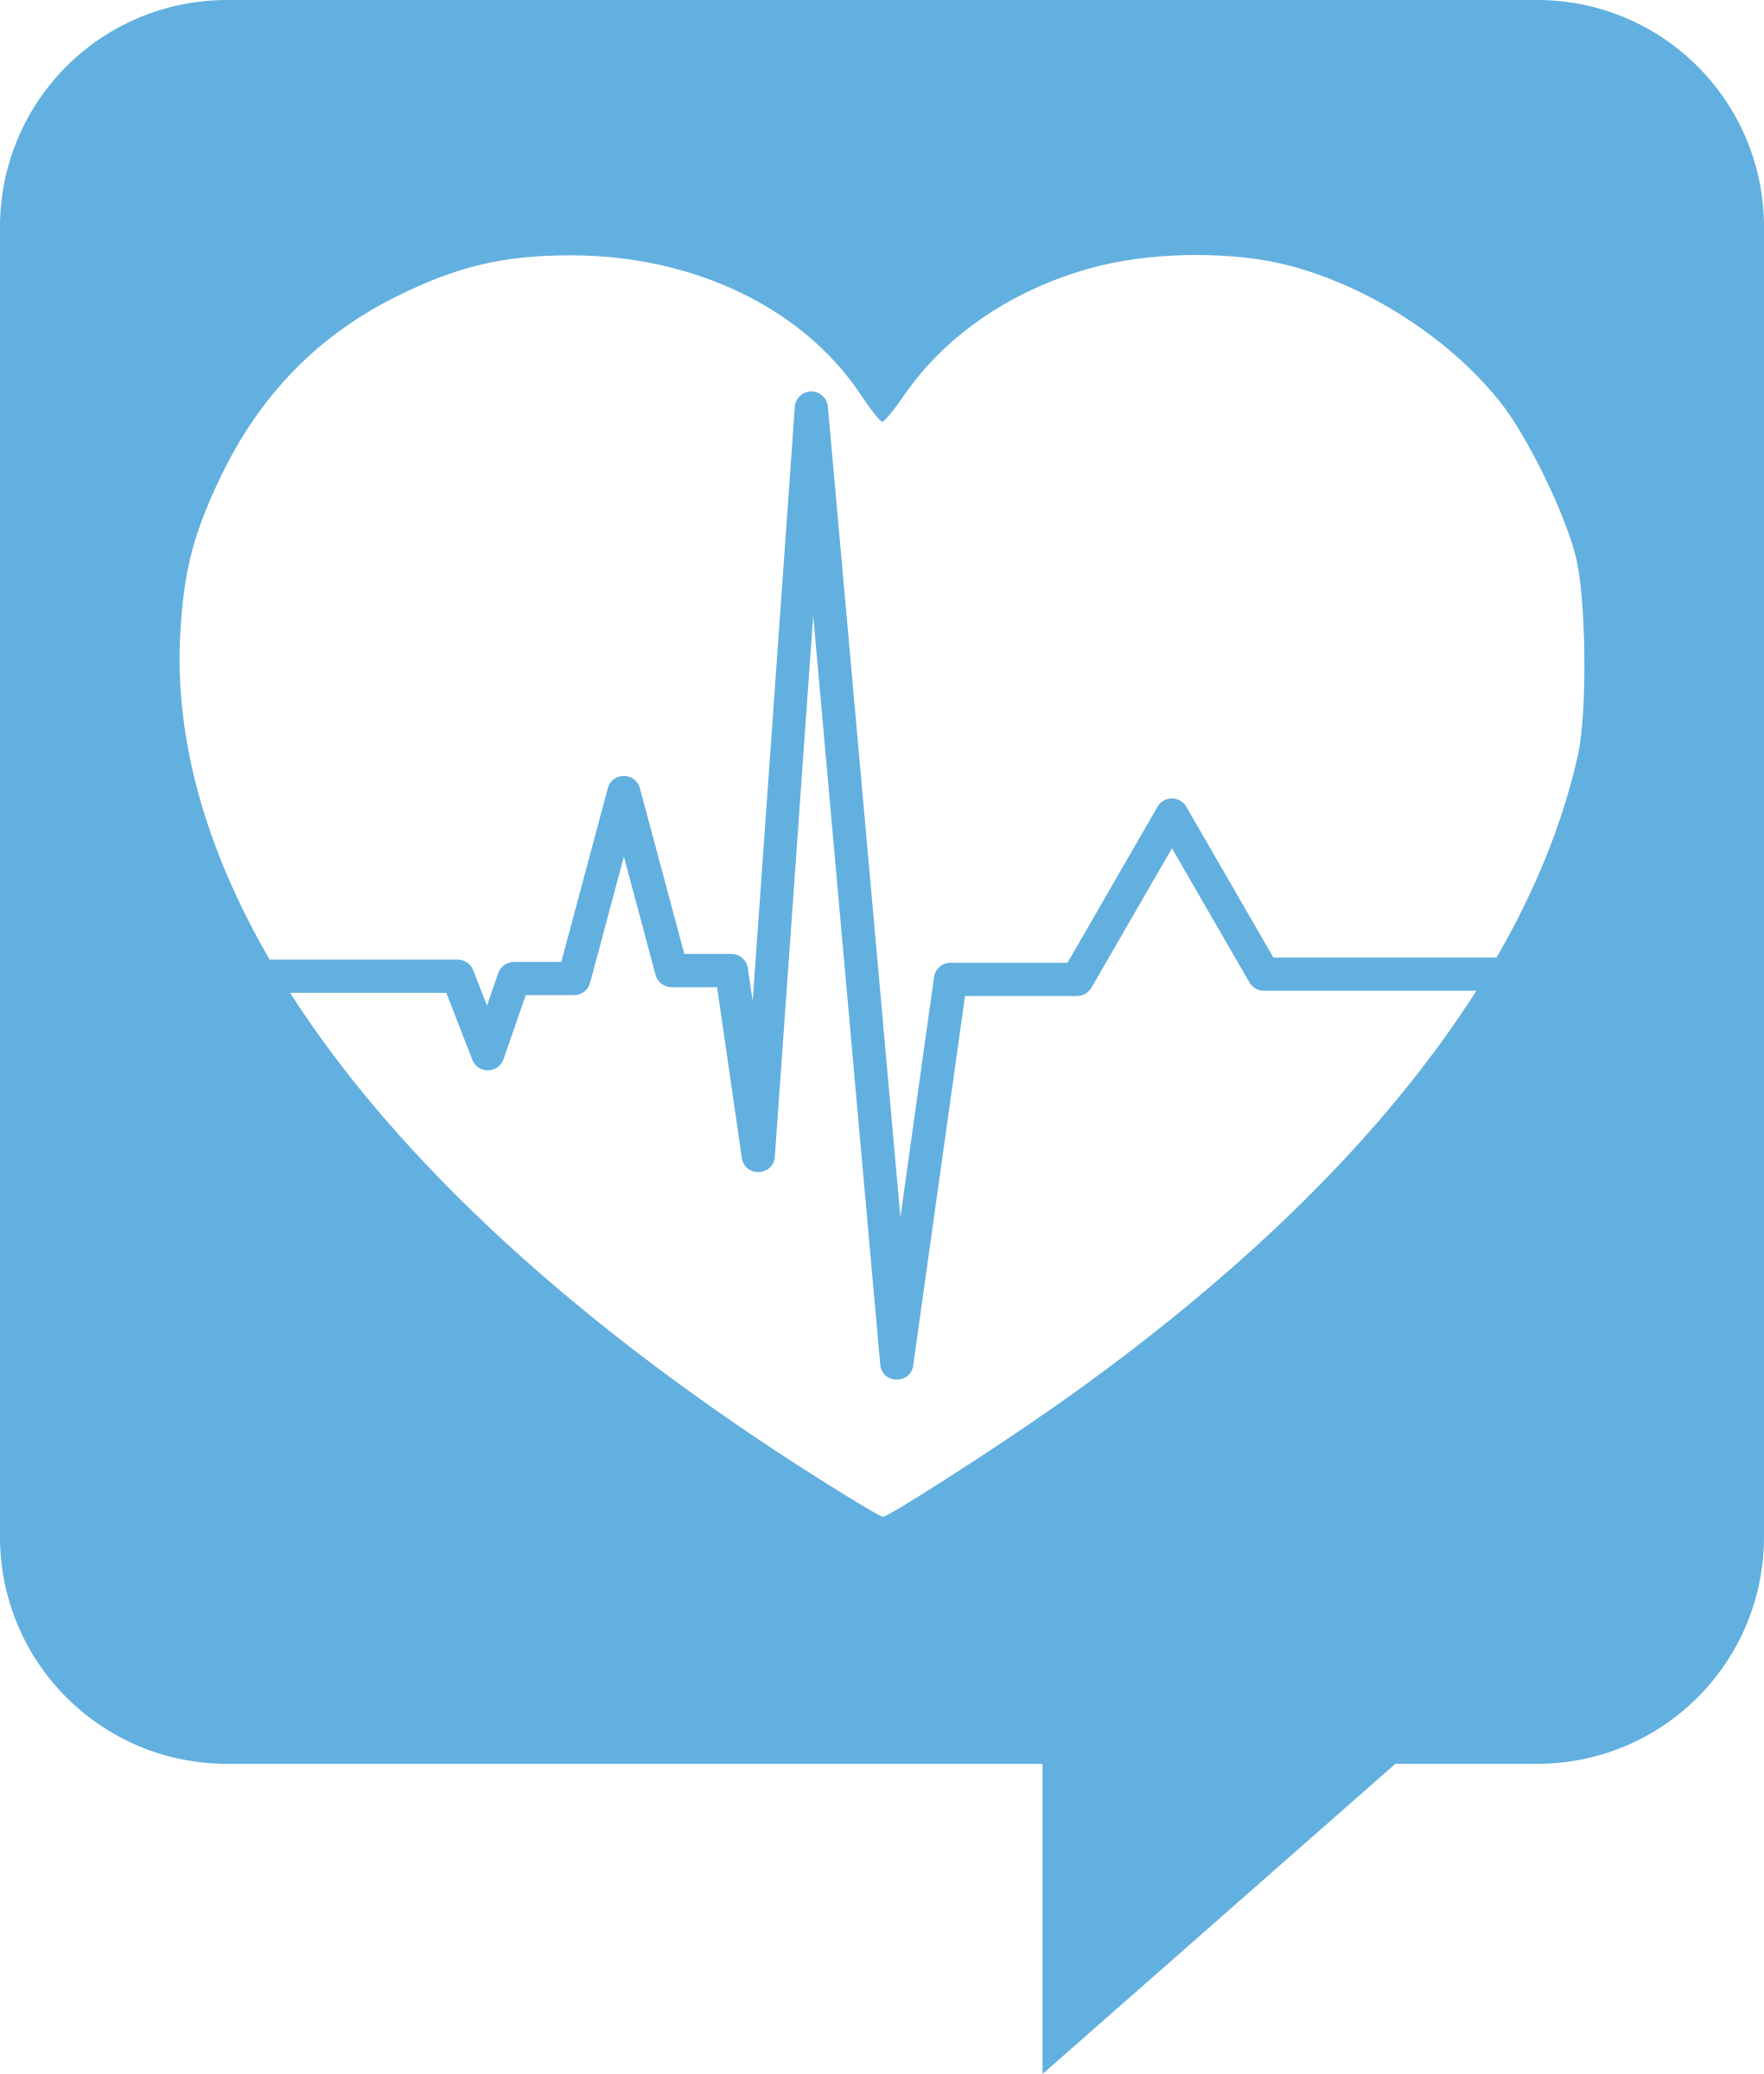 Heartbeat with heart clipart jpg free library Heartbeat Logo for Health.SE. No background. White heart Icons PNG ... jpg free library